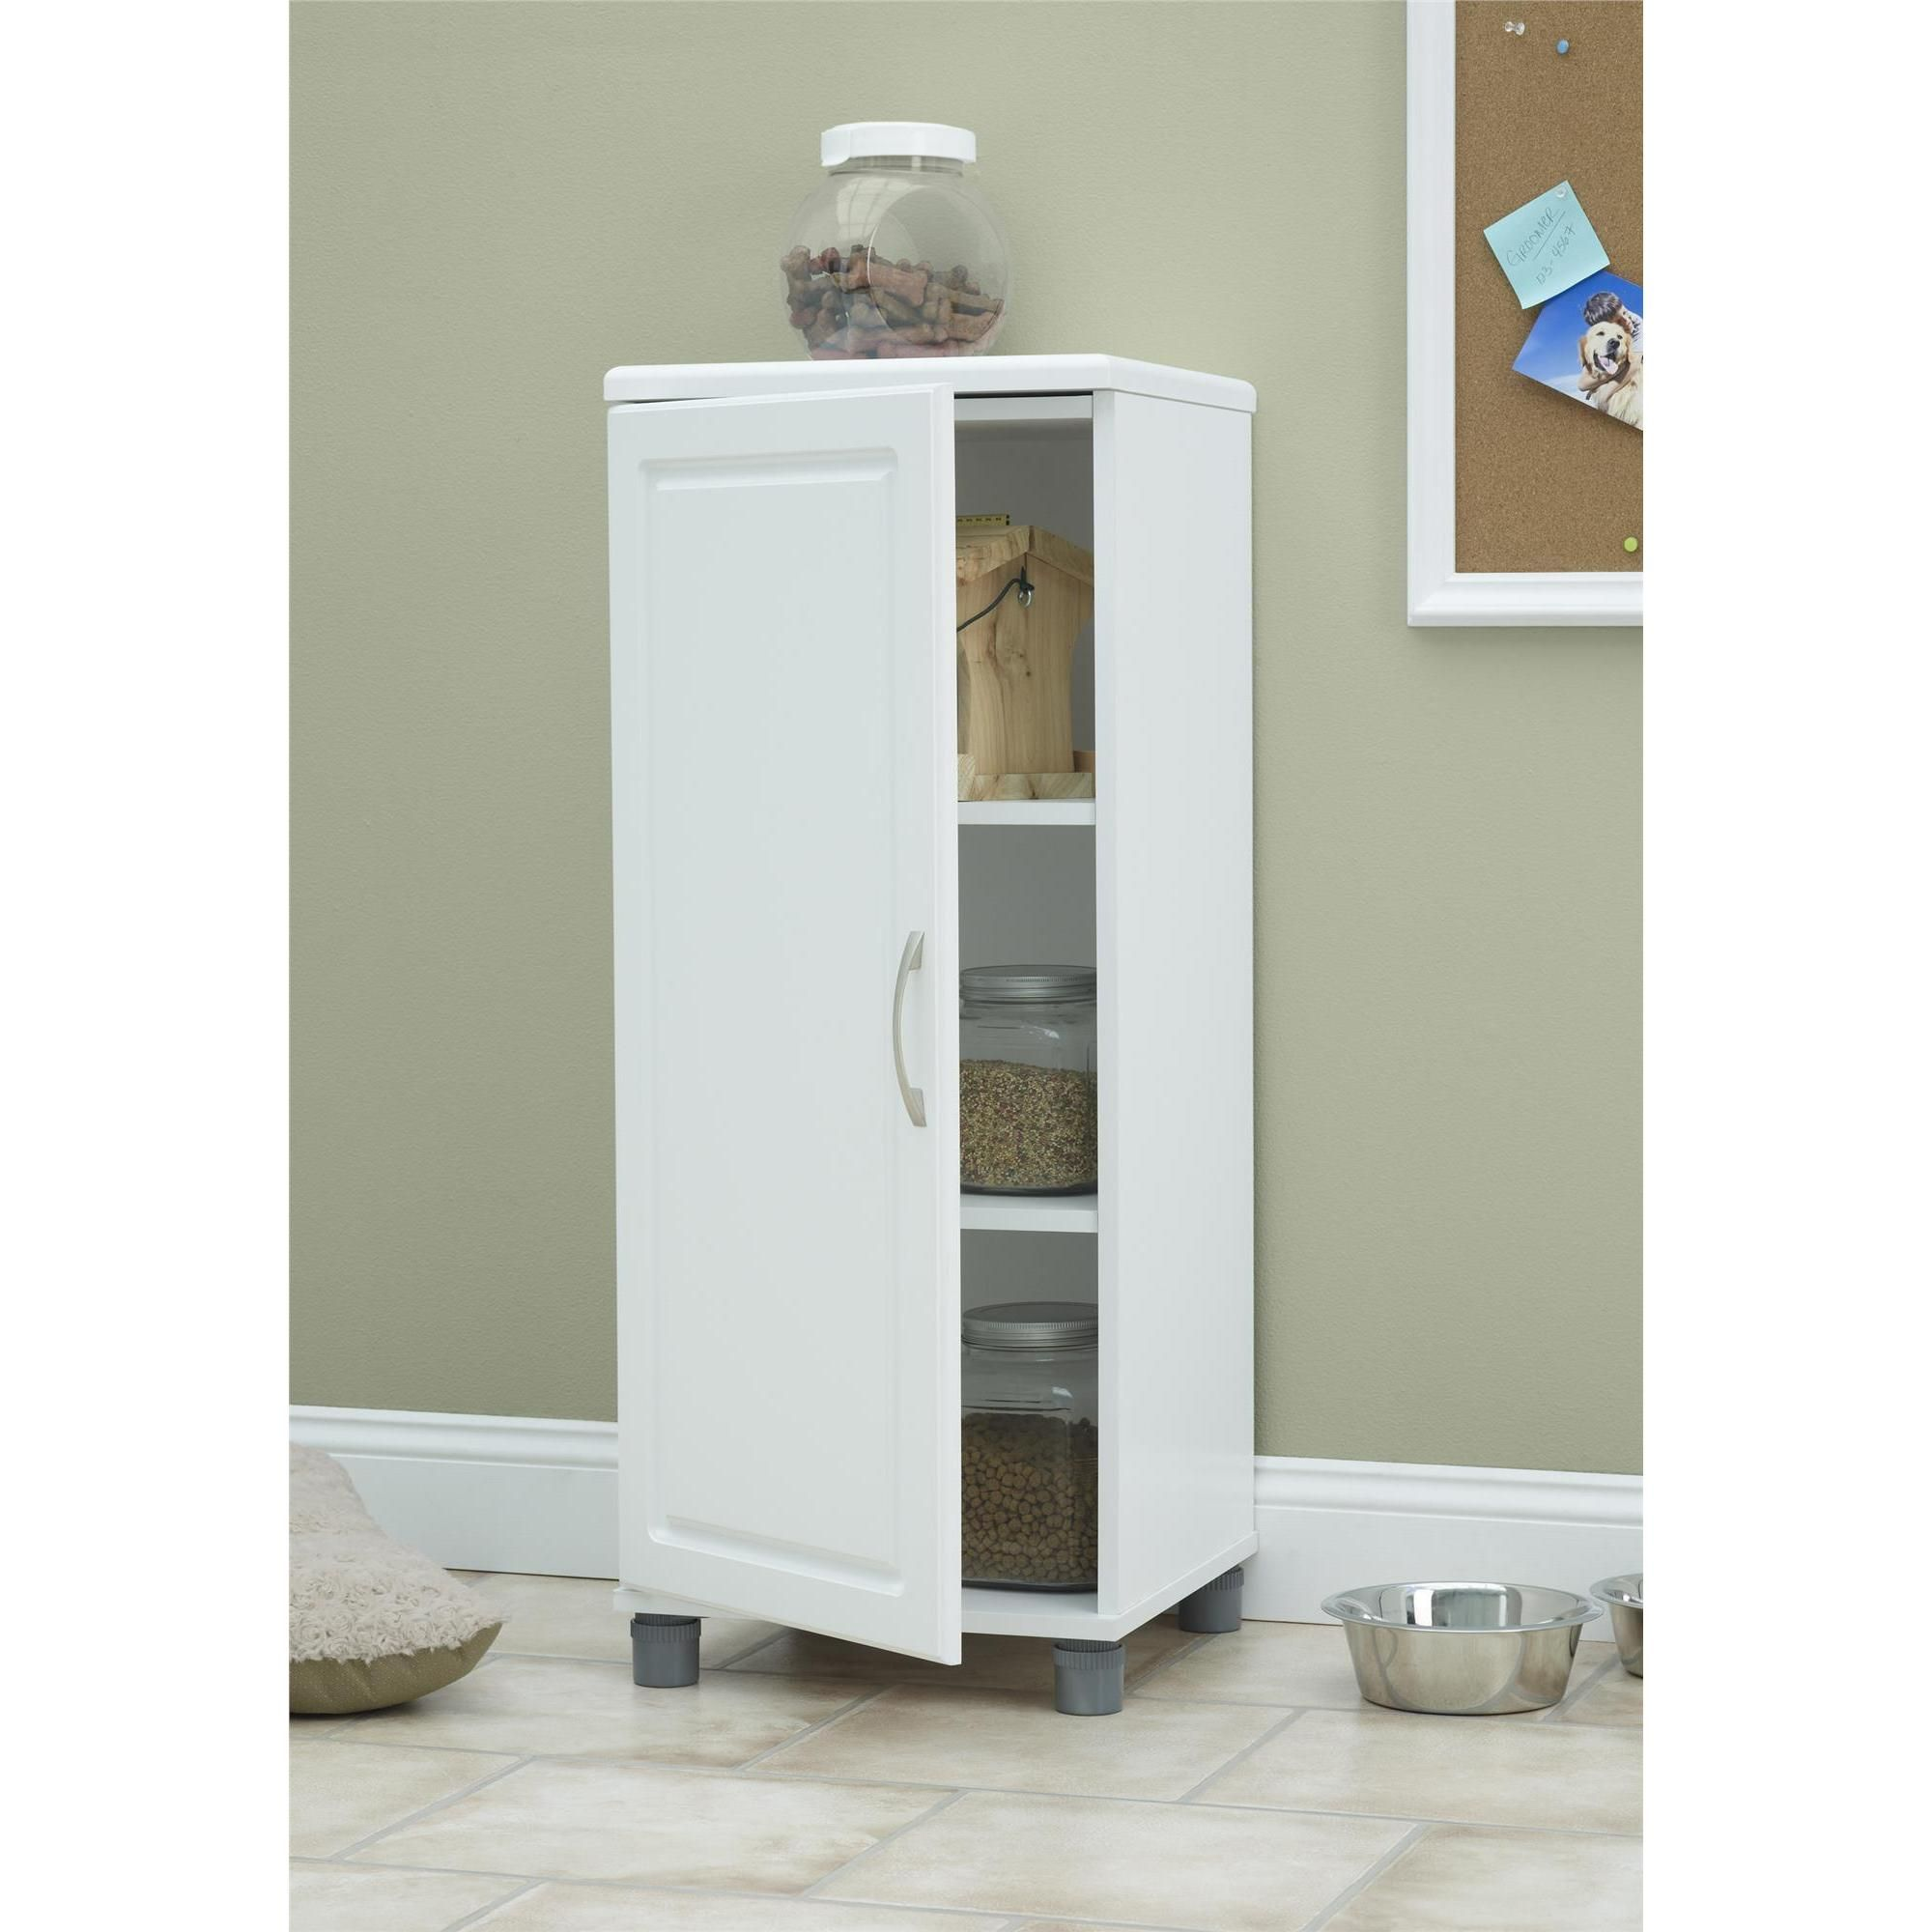 Systembuild White Kendall 16 Inch Stackable Storage Cabinet 16